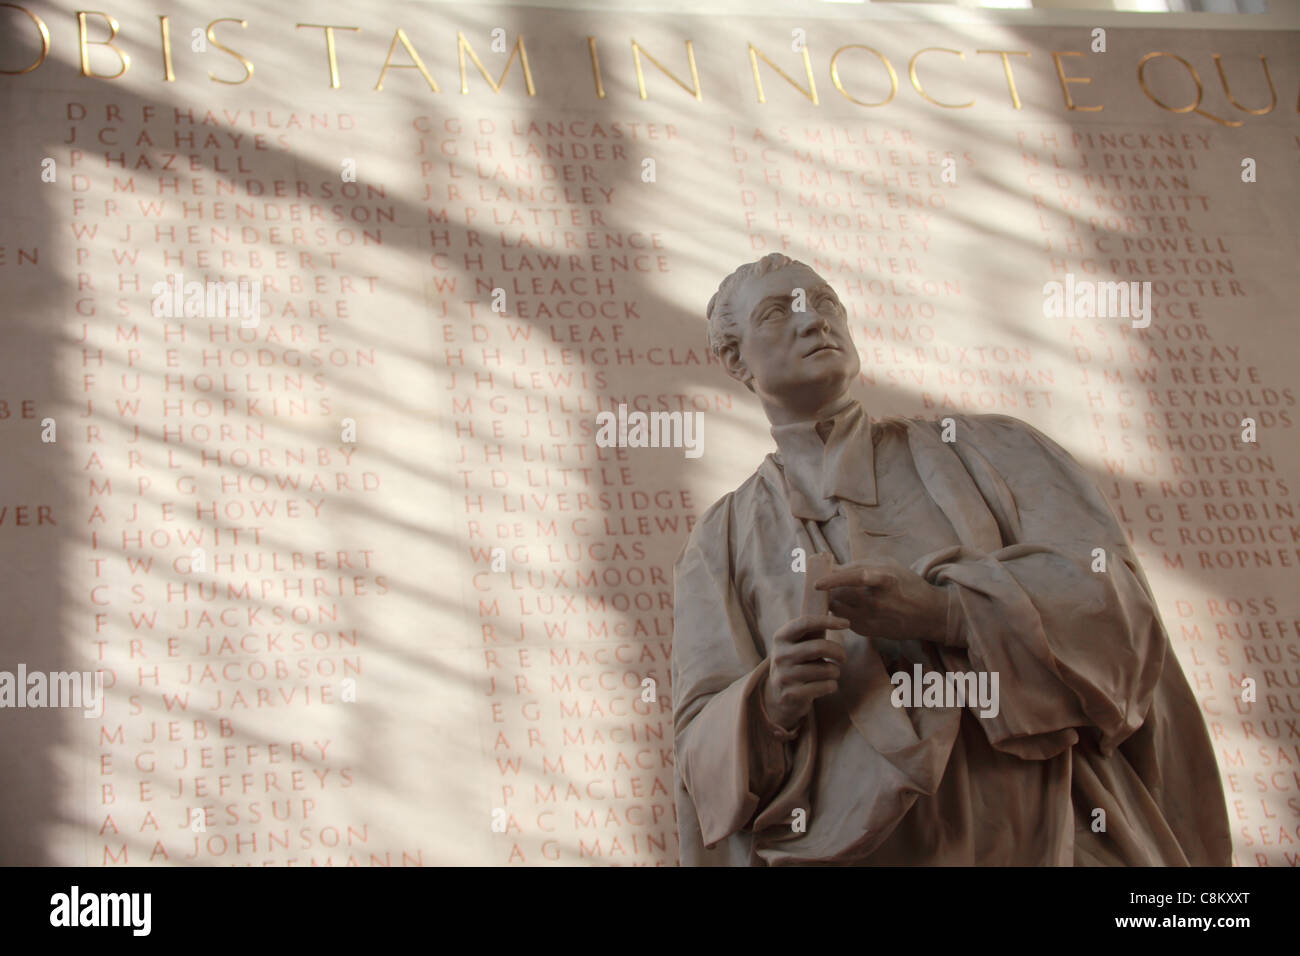 Statue of Isaac Newton, Corpus Christi chapel, Cambridge UK - Stock Image